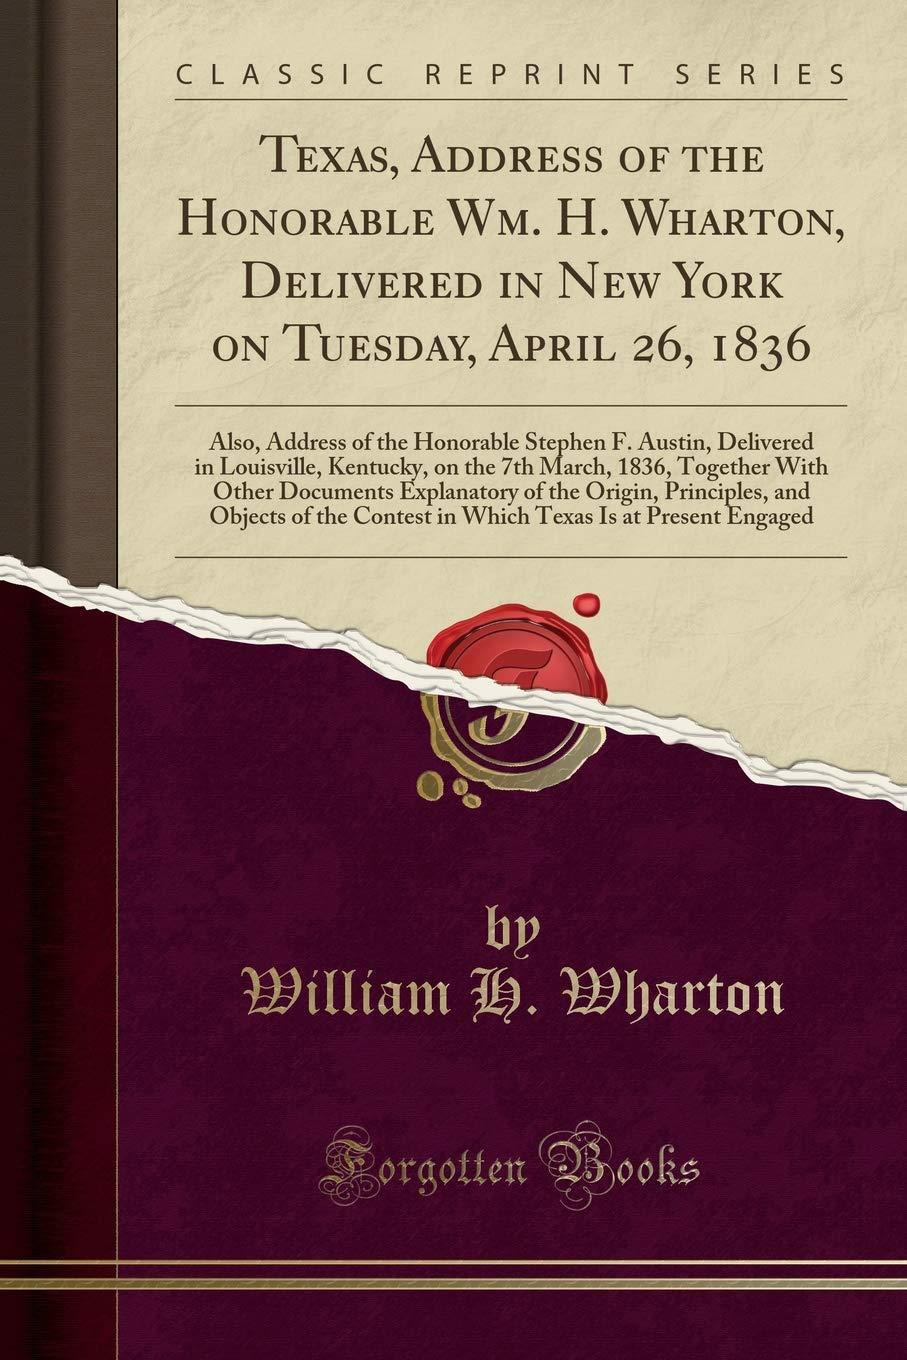 Download Texas: Address of the Honorable Wm; H. Wharton, Delivered in New York on Tuesday, April 26, 1836; Also Address of the Honorable Stephen F. Austin ... on the 7th March, 1836 (Classic Reprint) pdf epub